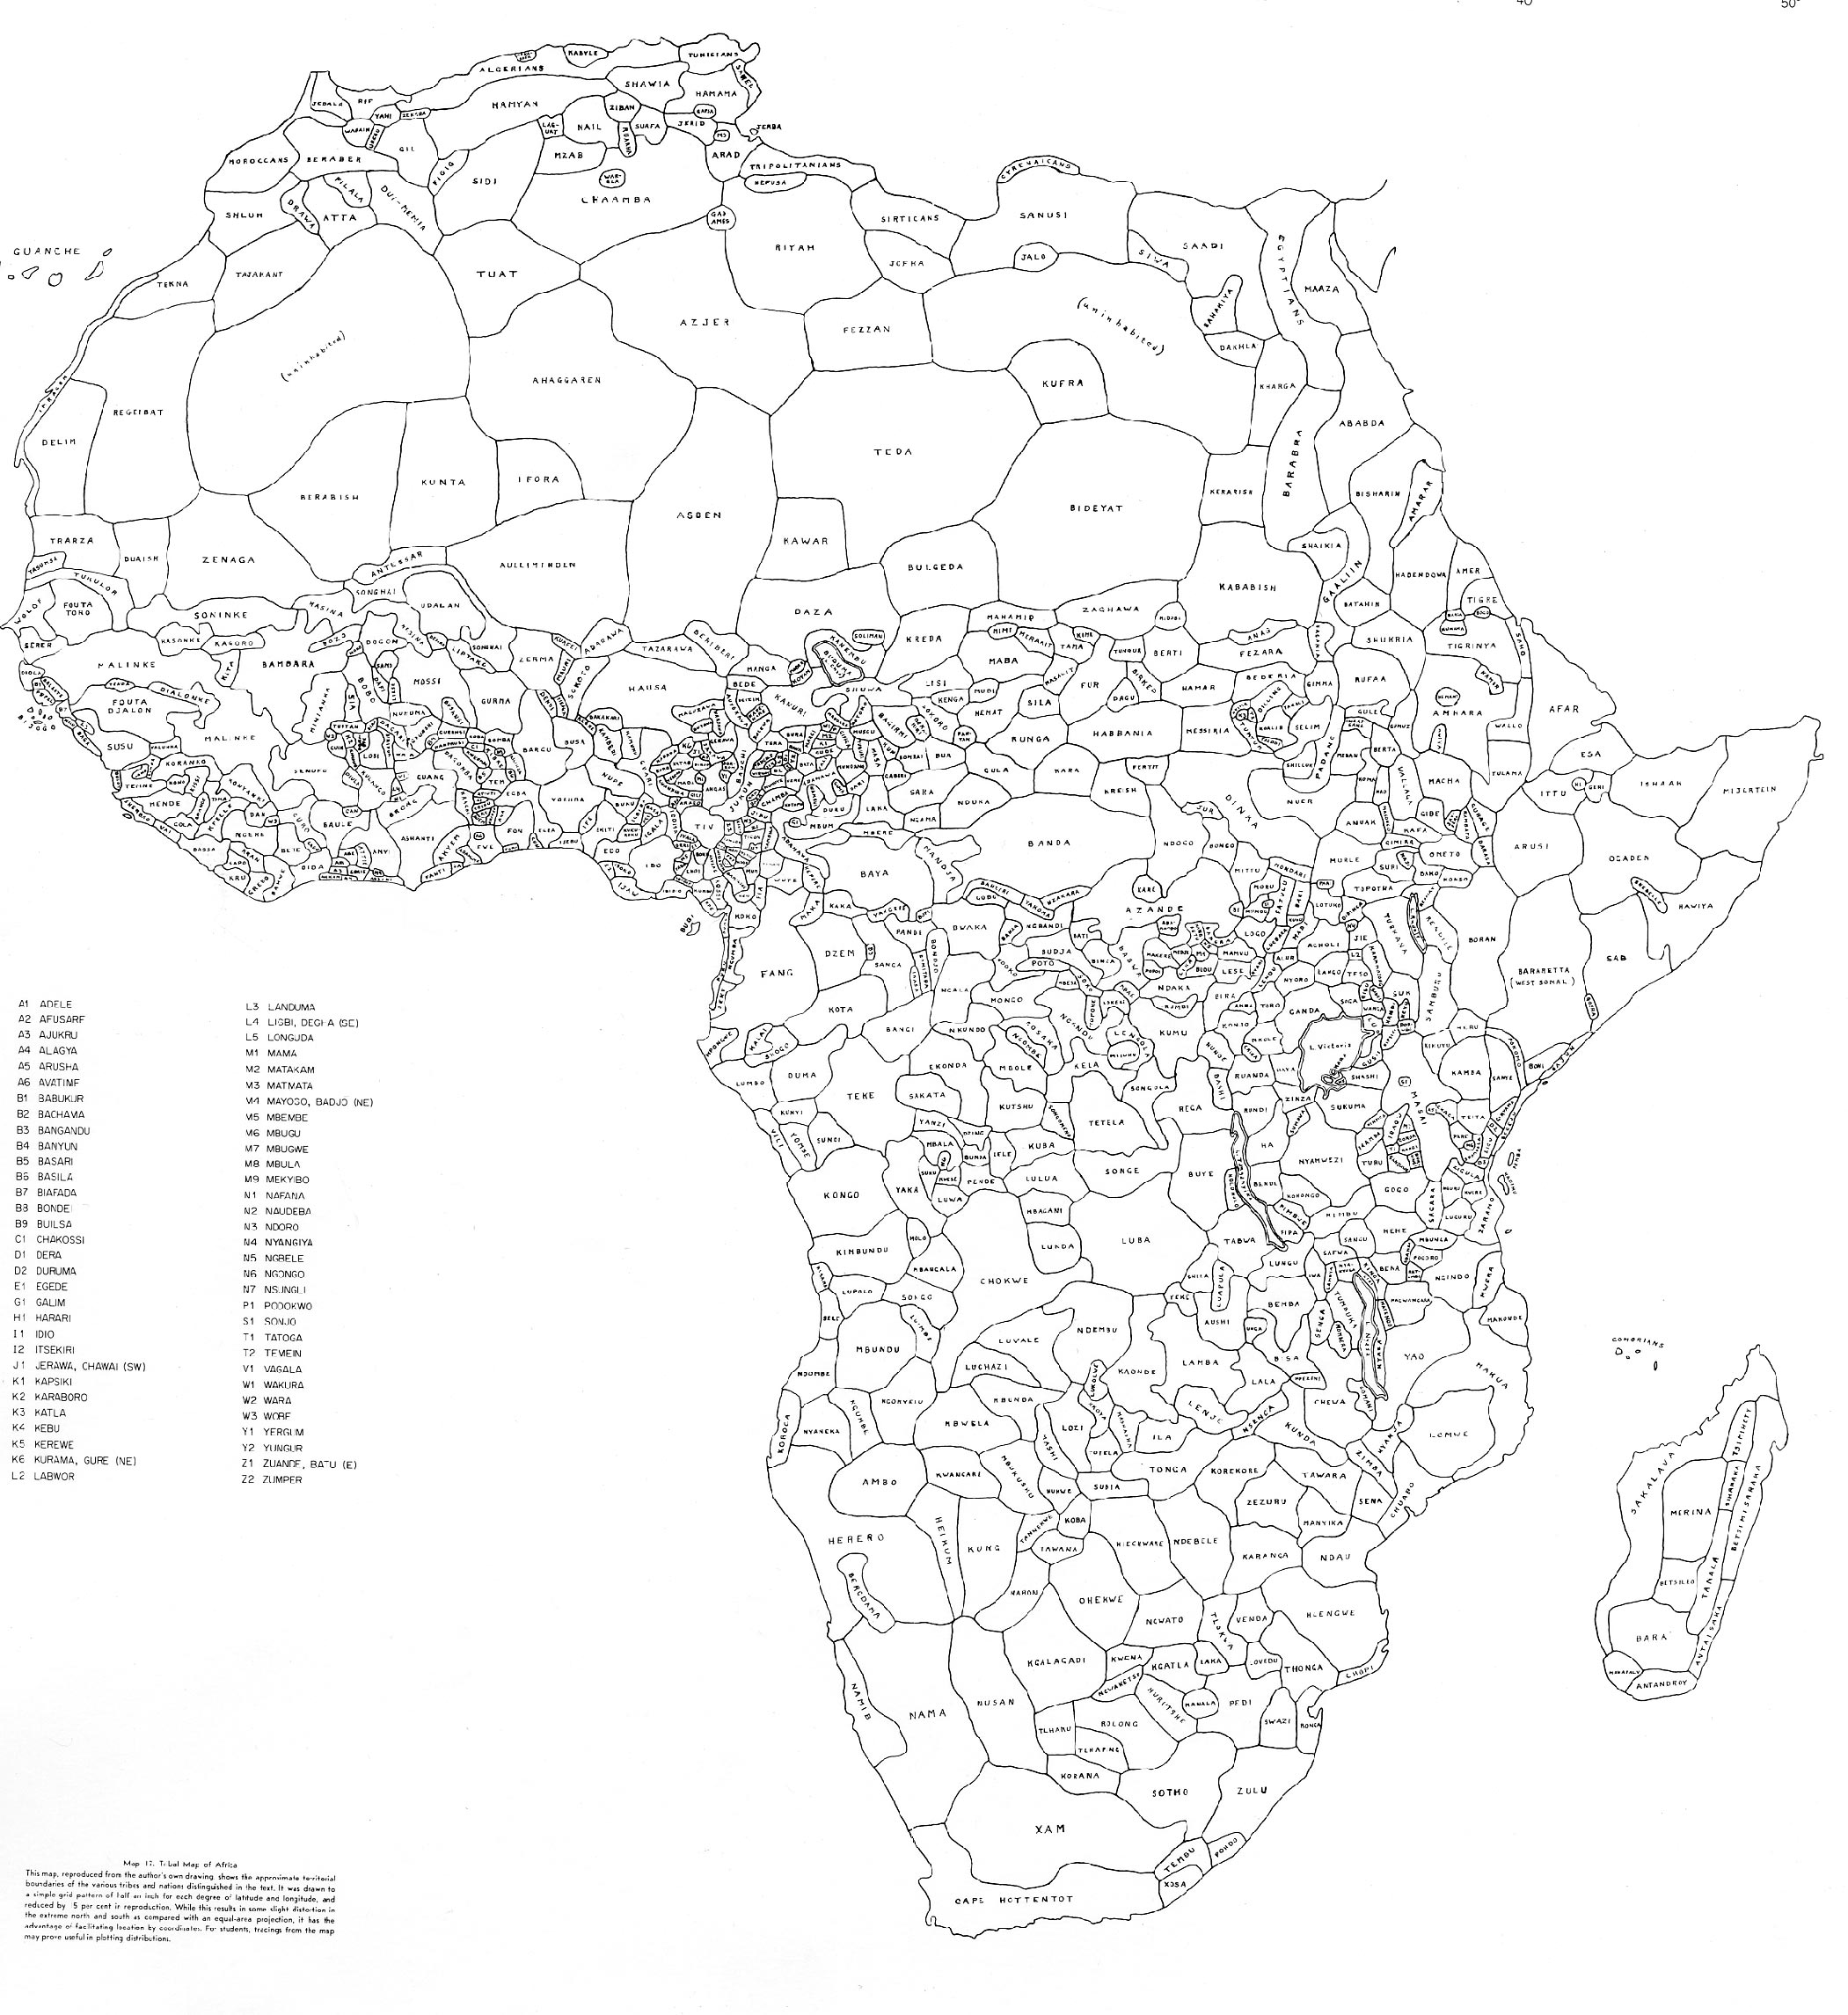 What Africa actually looked like in terms of tribal